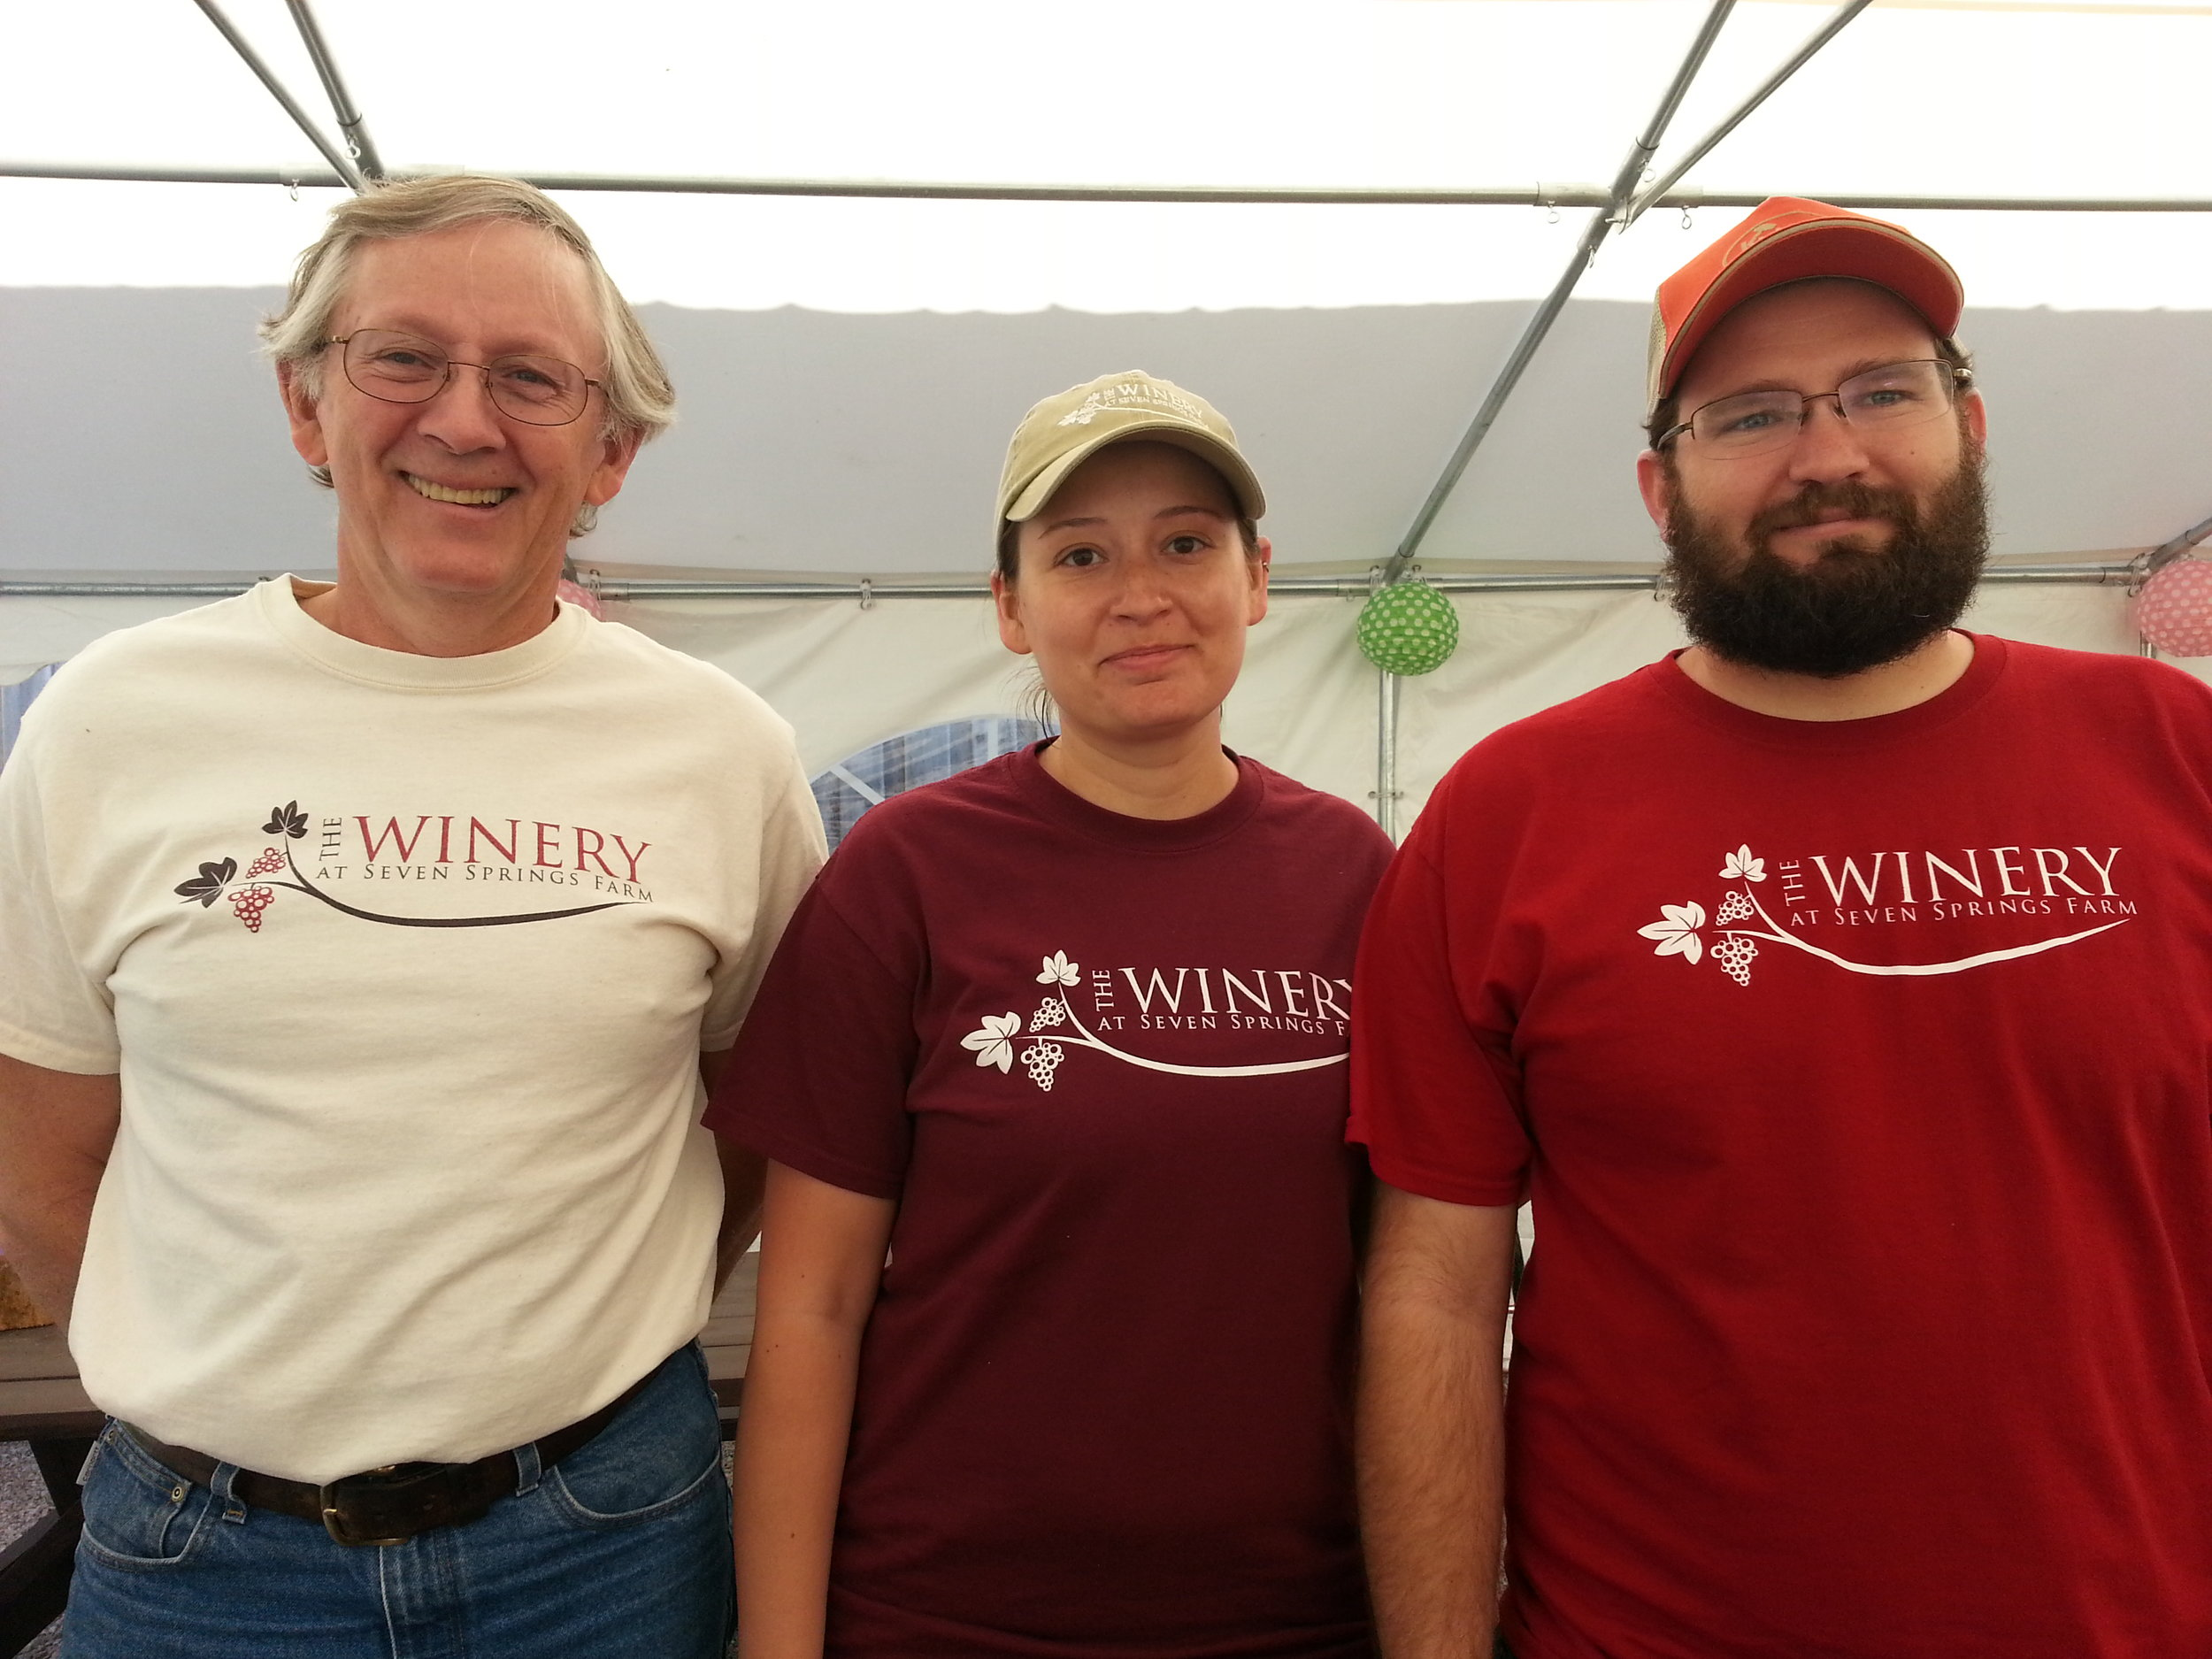 L - Rt: James Riddle, Nikki Riddle, Michael Coombs of  The Winery at Seven Springs Farm , Maynardville, Tennessee.